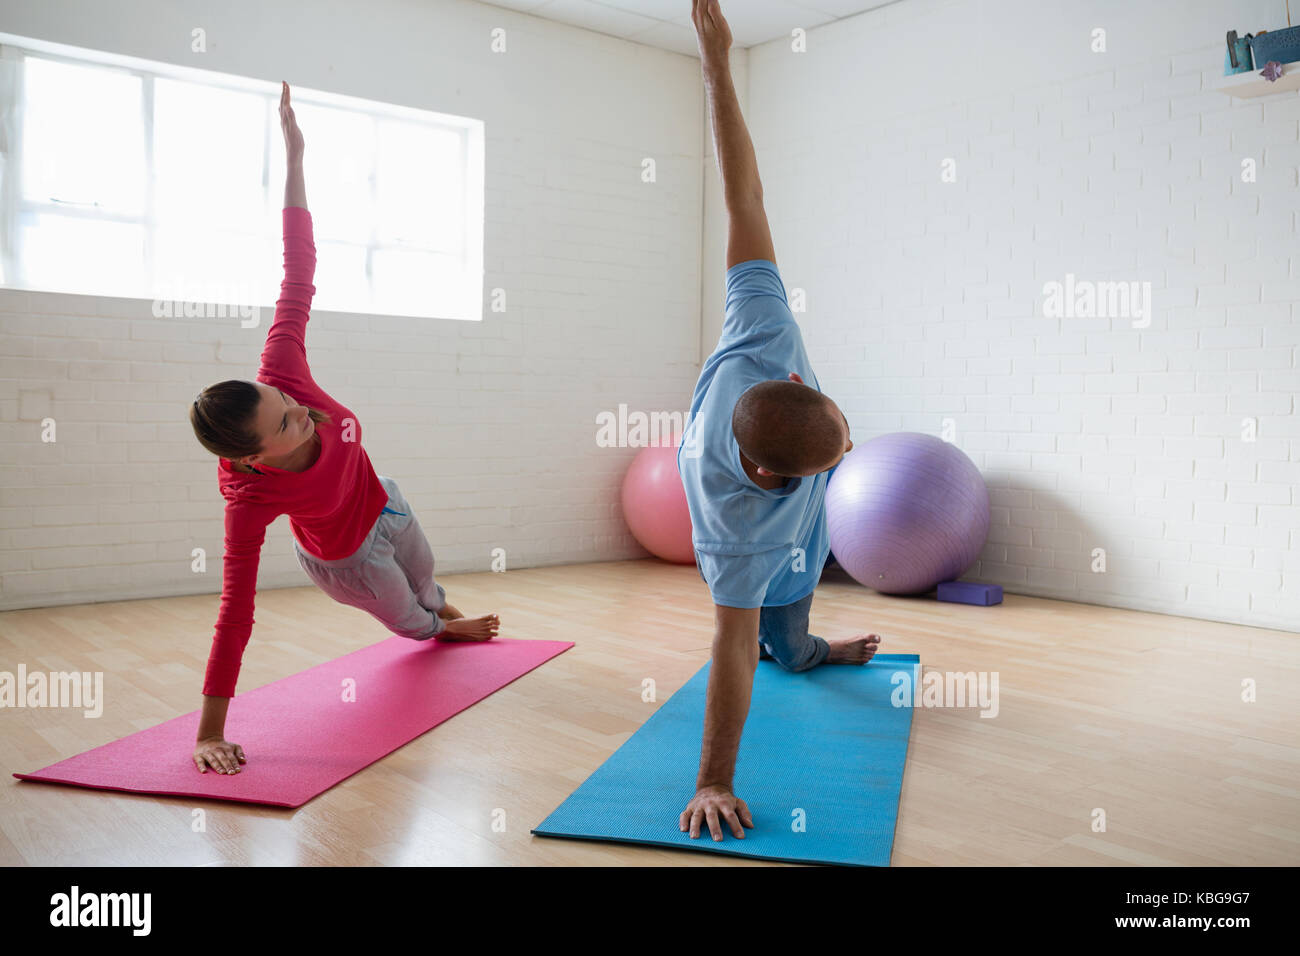 Male instructor with female student practicing side plank pose in yoga studio - Stock Image